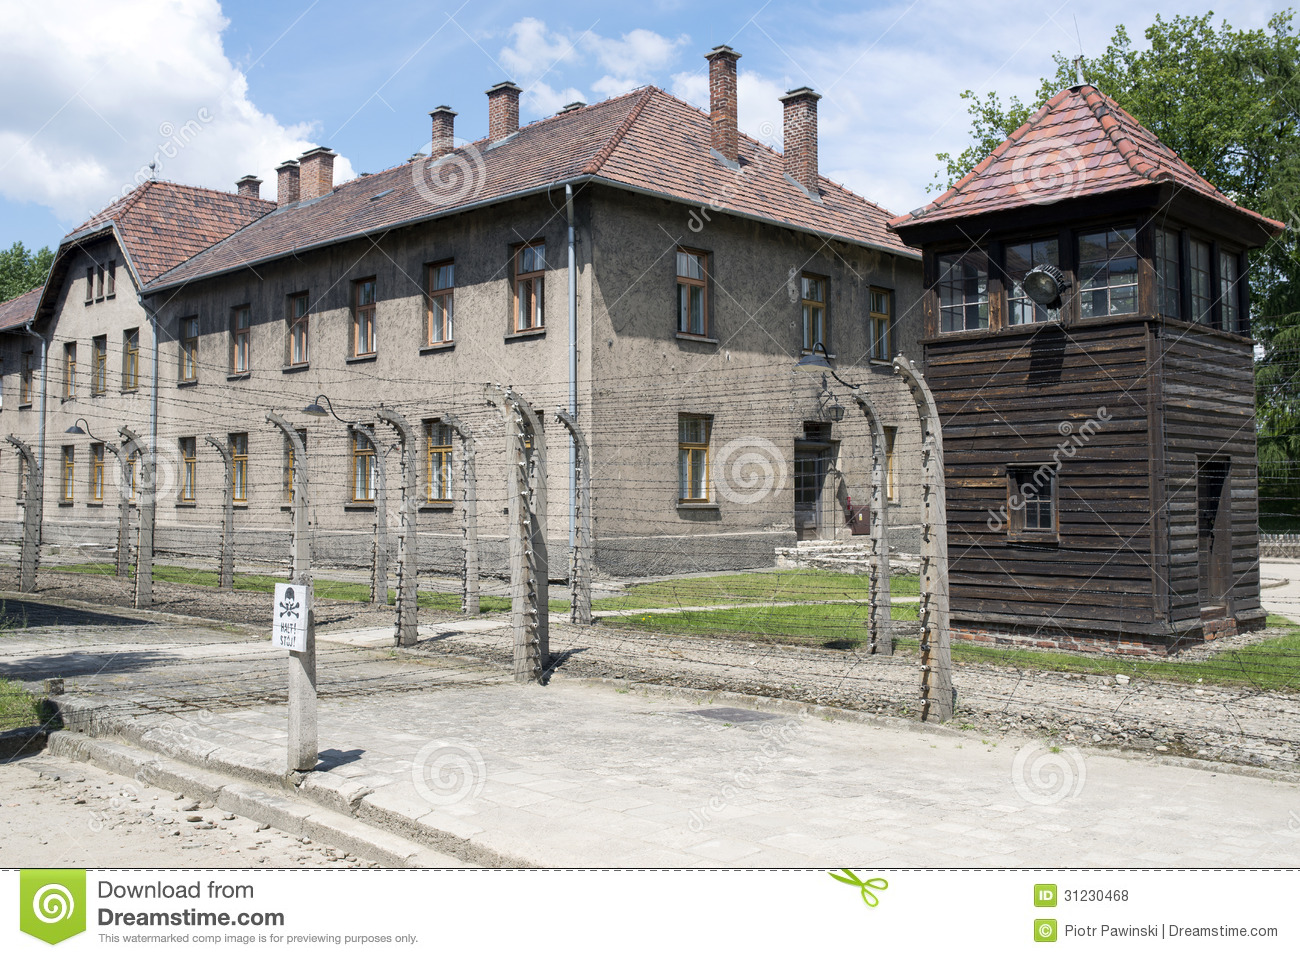 People and Places: Images of a Nazi Concentration Camp |Concentration Camps Buildings